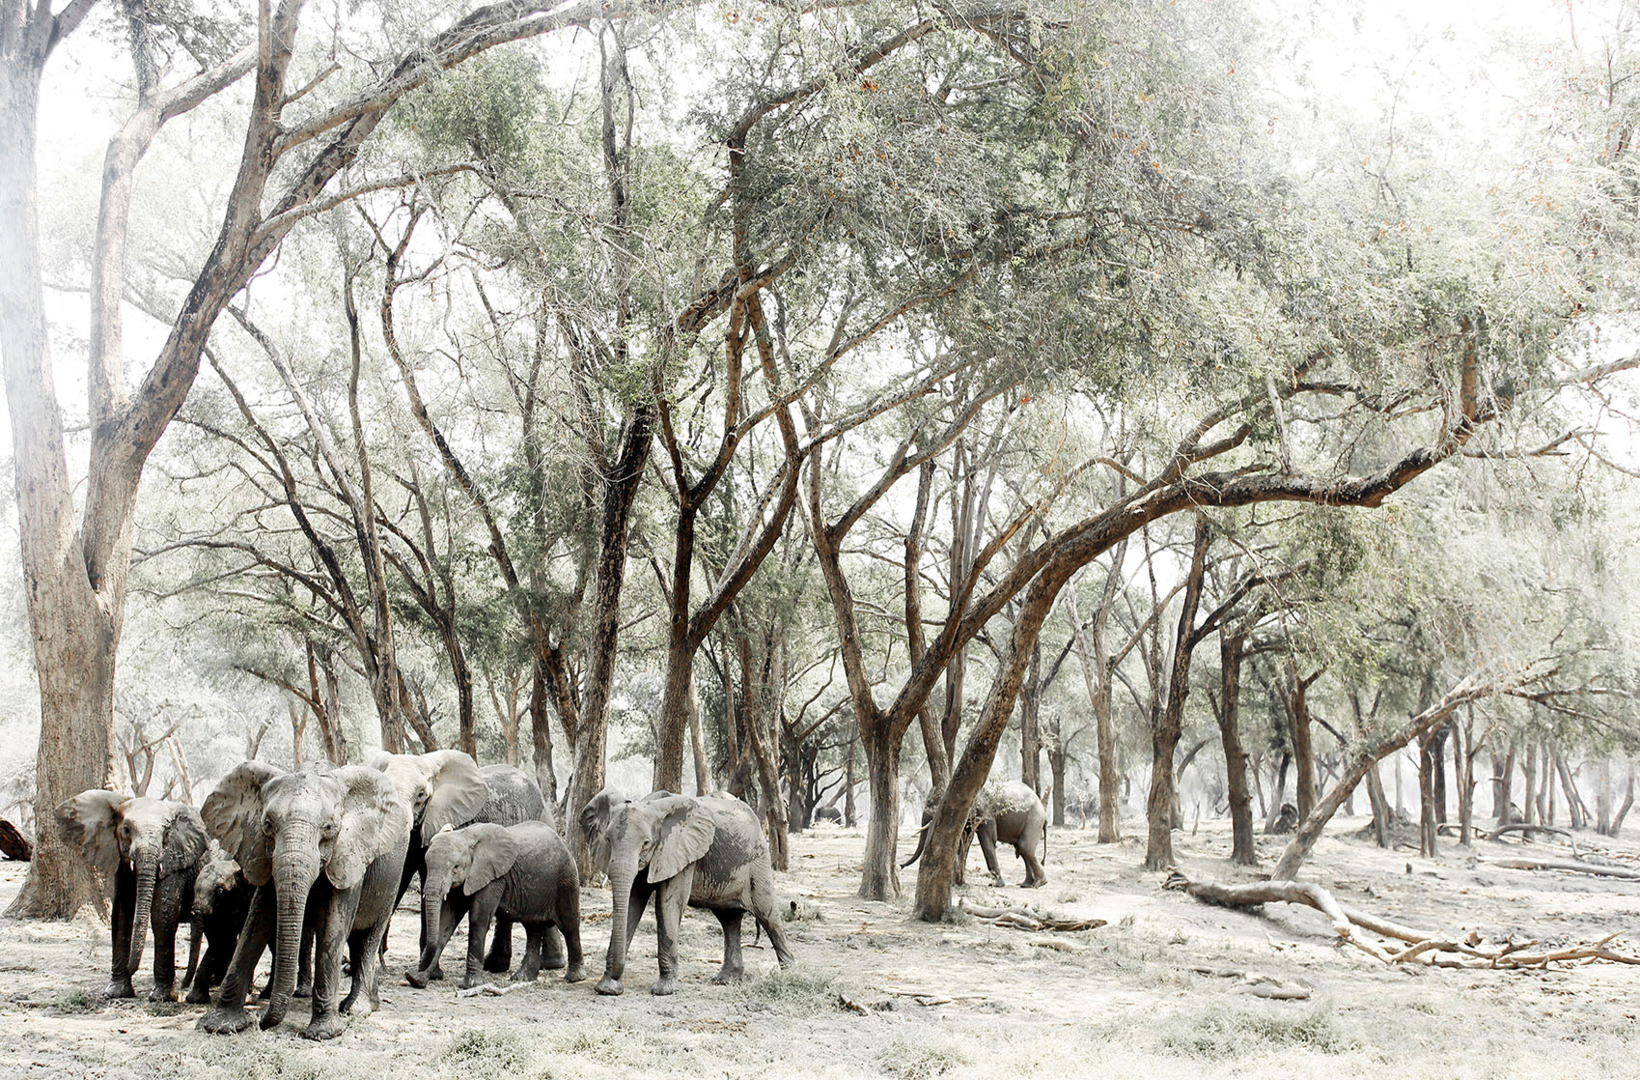 A breeding herd of African elephants cross a dry riverbed to seek the shade of Acacia trees walking in Mana Pools National Park Zimbabwe